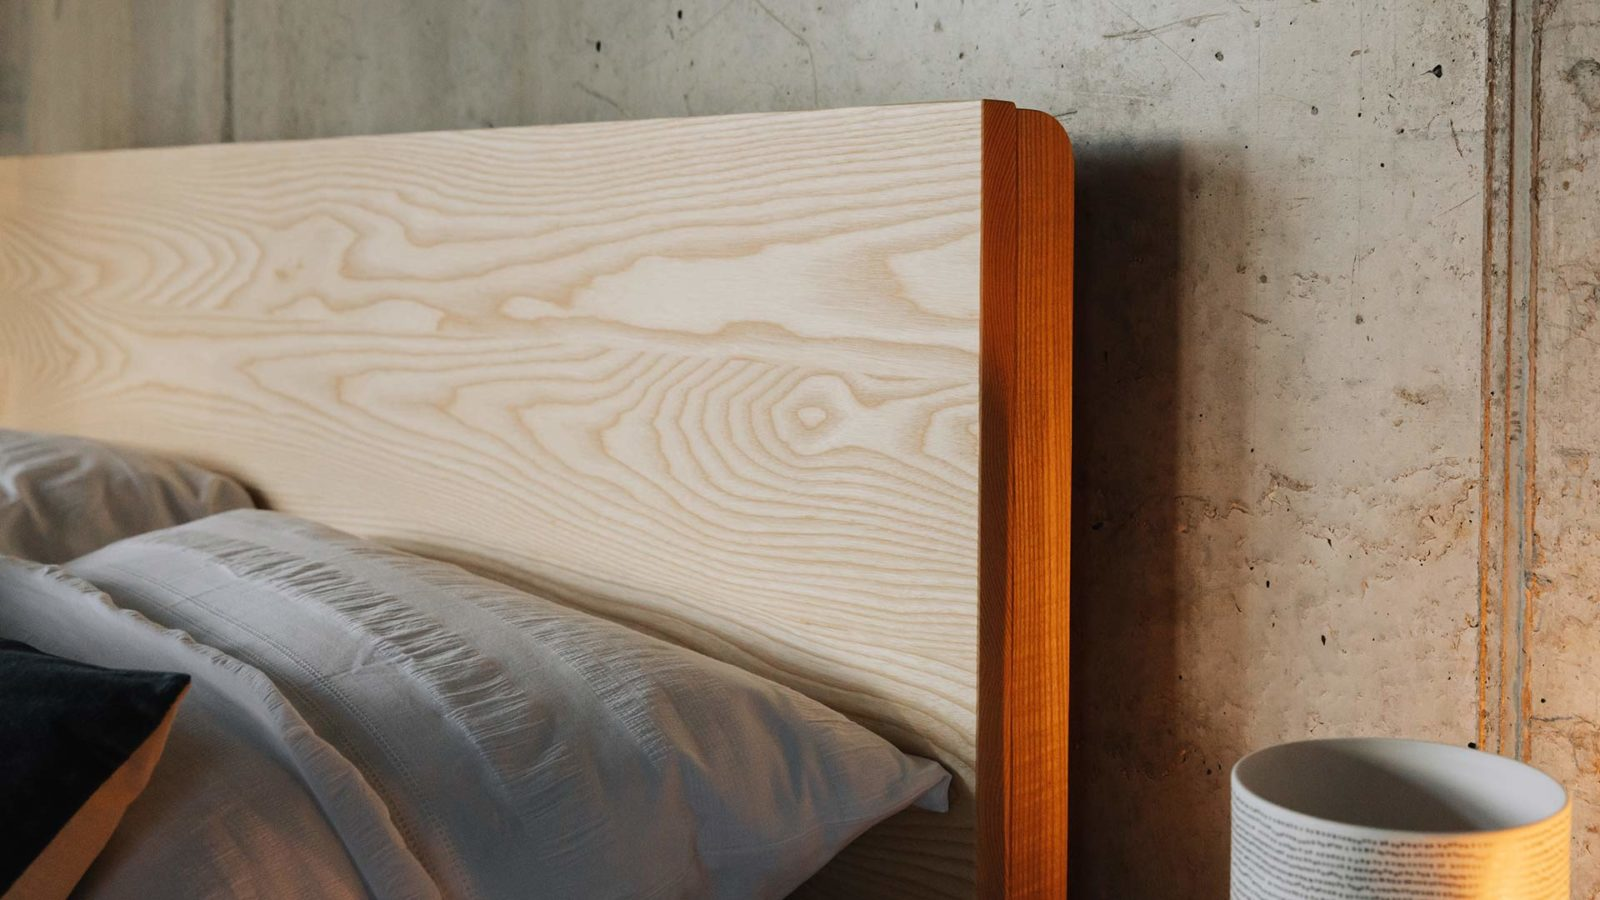 A closer view of the Bamford wooden bed headboard made from solid Ash